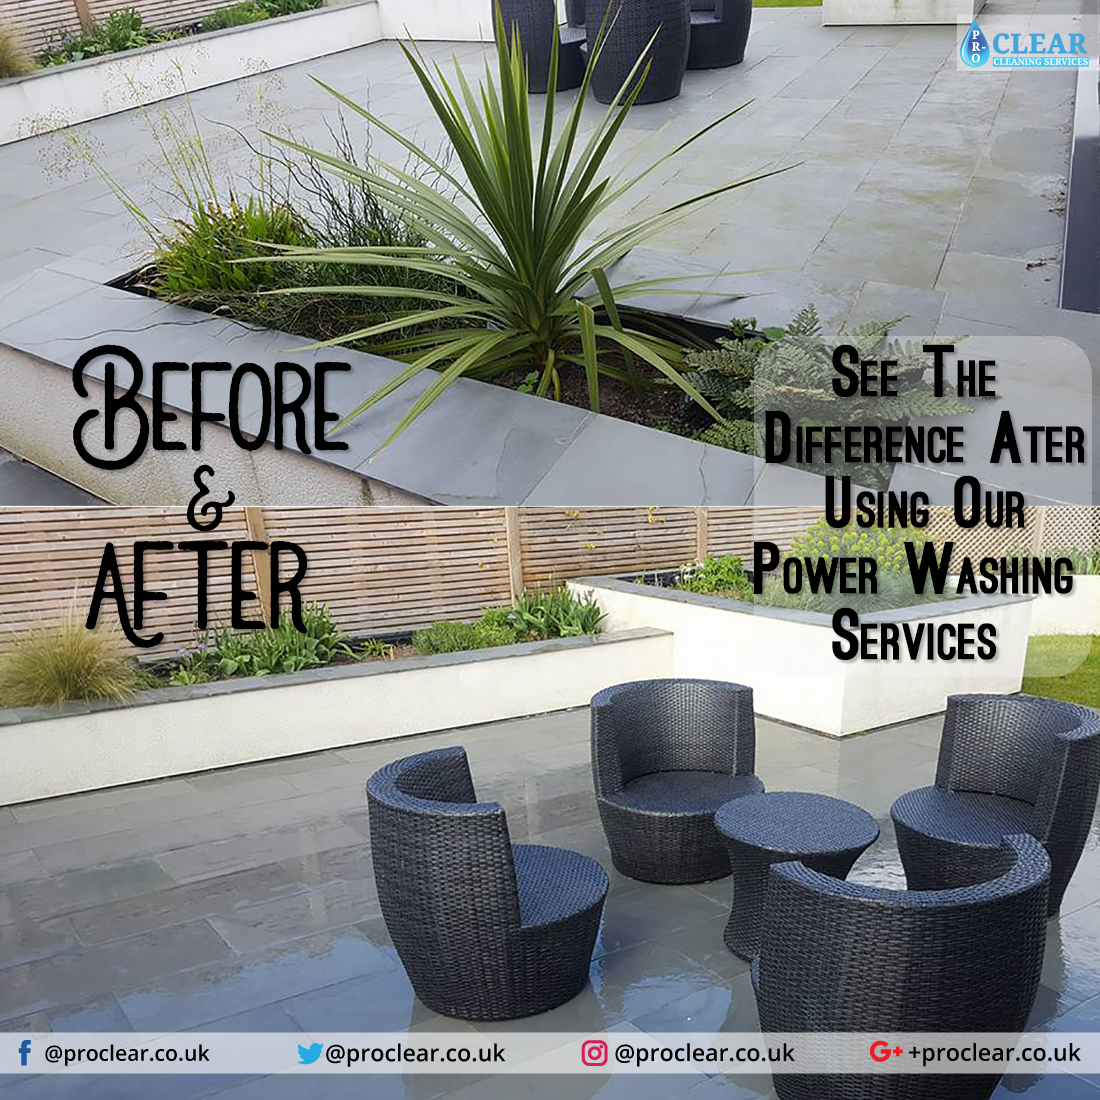 Pin By Pro Clear Cleaning Services On Power Washing Power Washing Services Cleaning Service Outdoor Decor